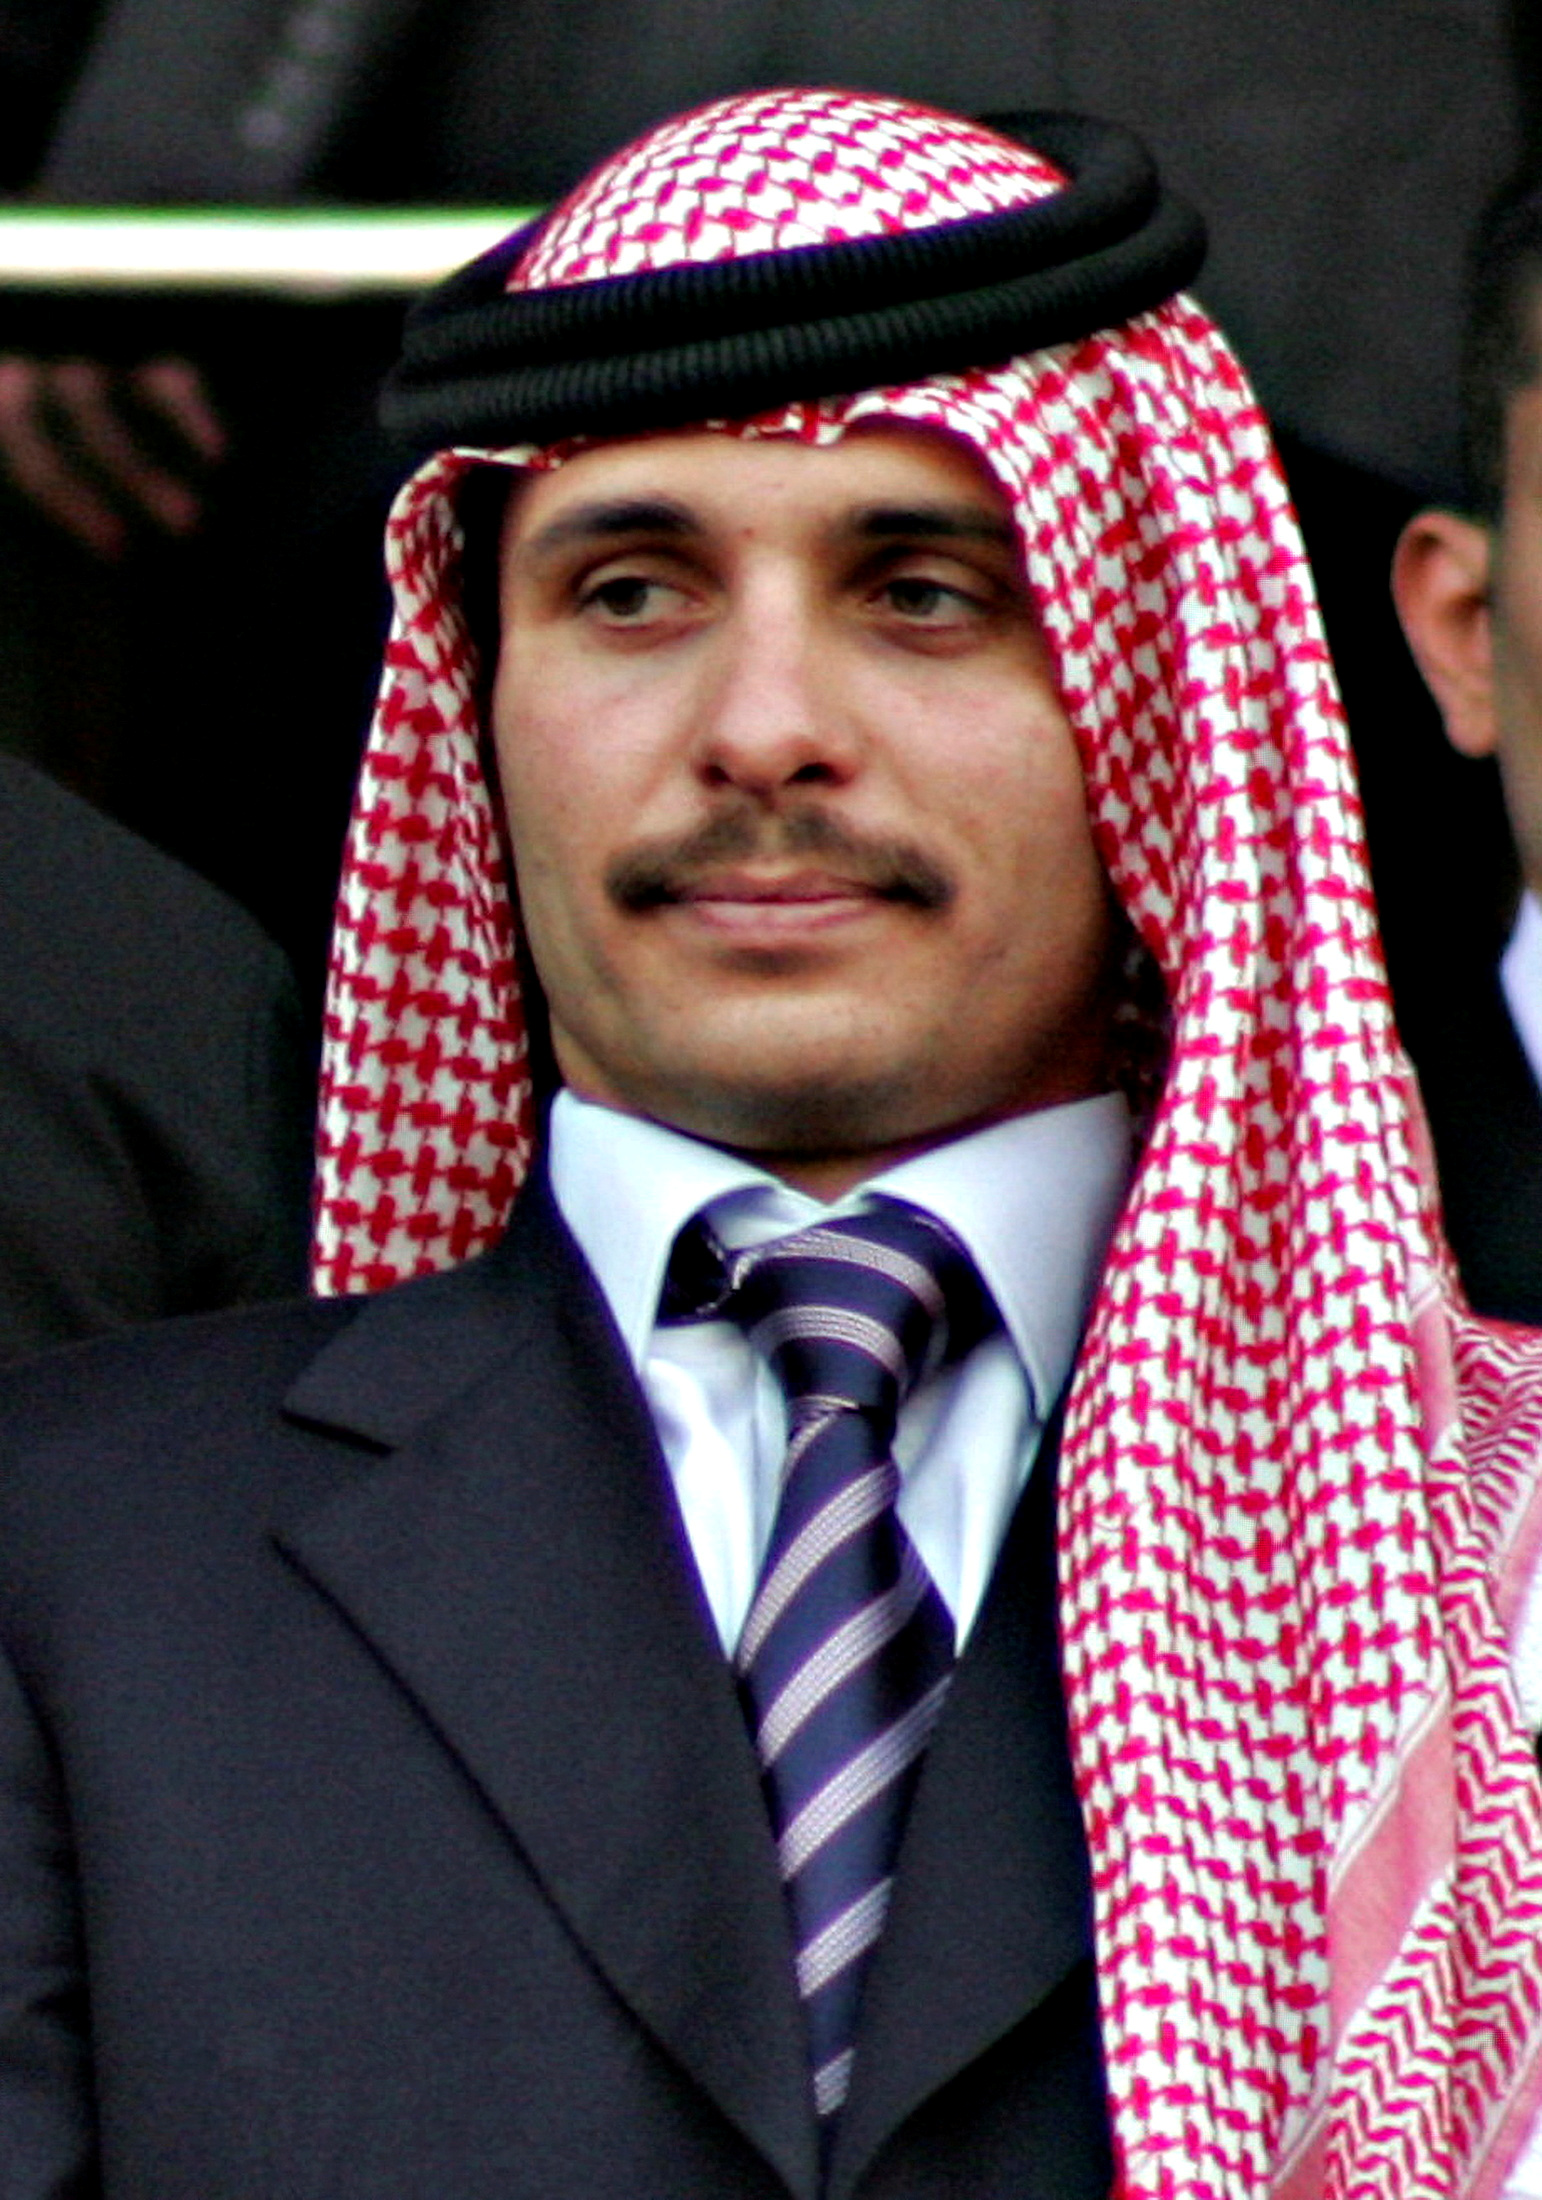 Jordan's former Crown Prince Hamza bin Hussein attends official celebrations of the 10th anniversary of King Abdullah's accession to the throne, in Amman June 9, 2009. REUTERS/Majed Jaber/File Photo